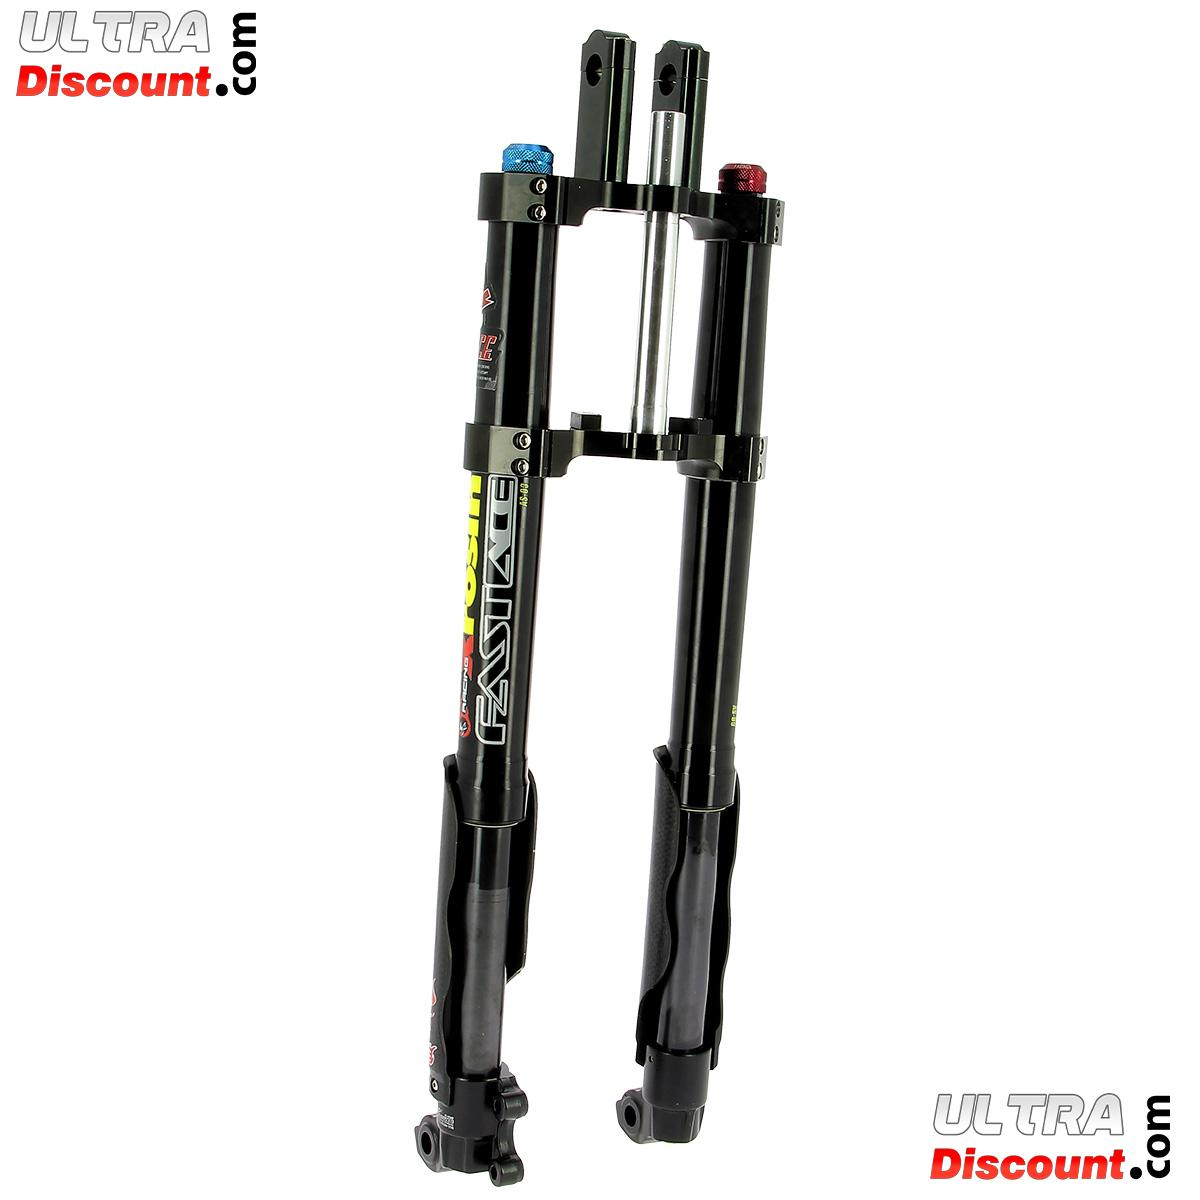 Complete Premium Fast Ace Front Fork With Steel Tubes For